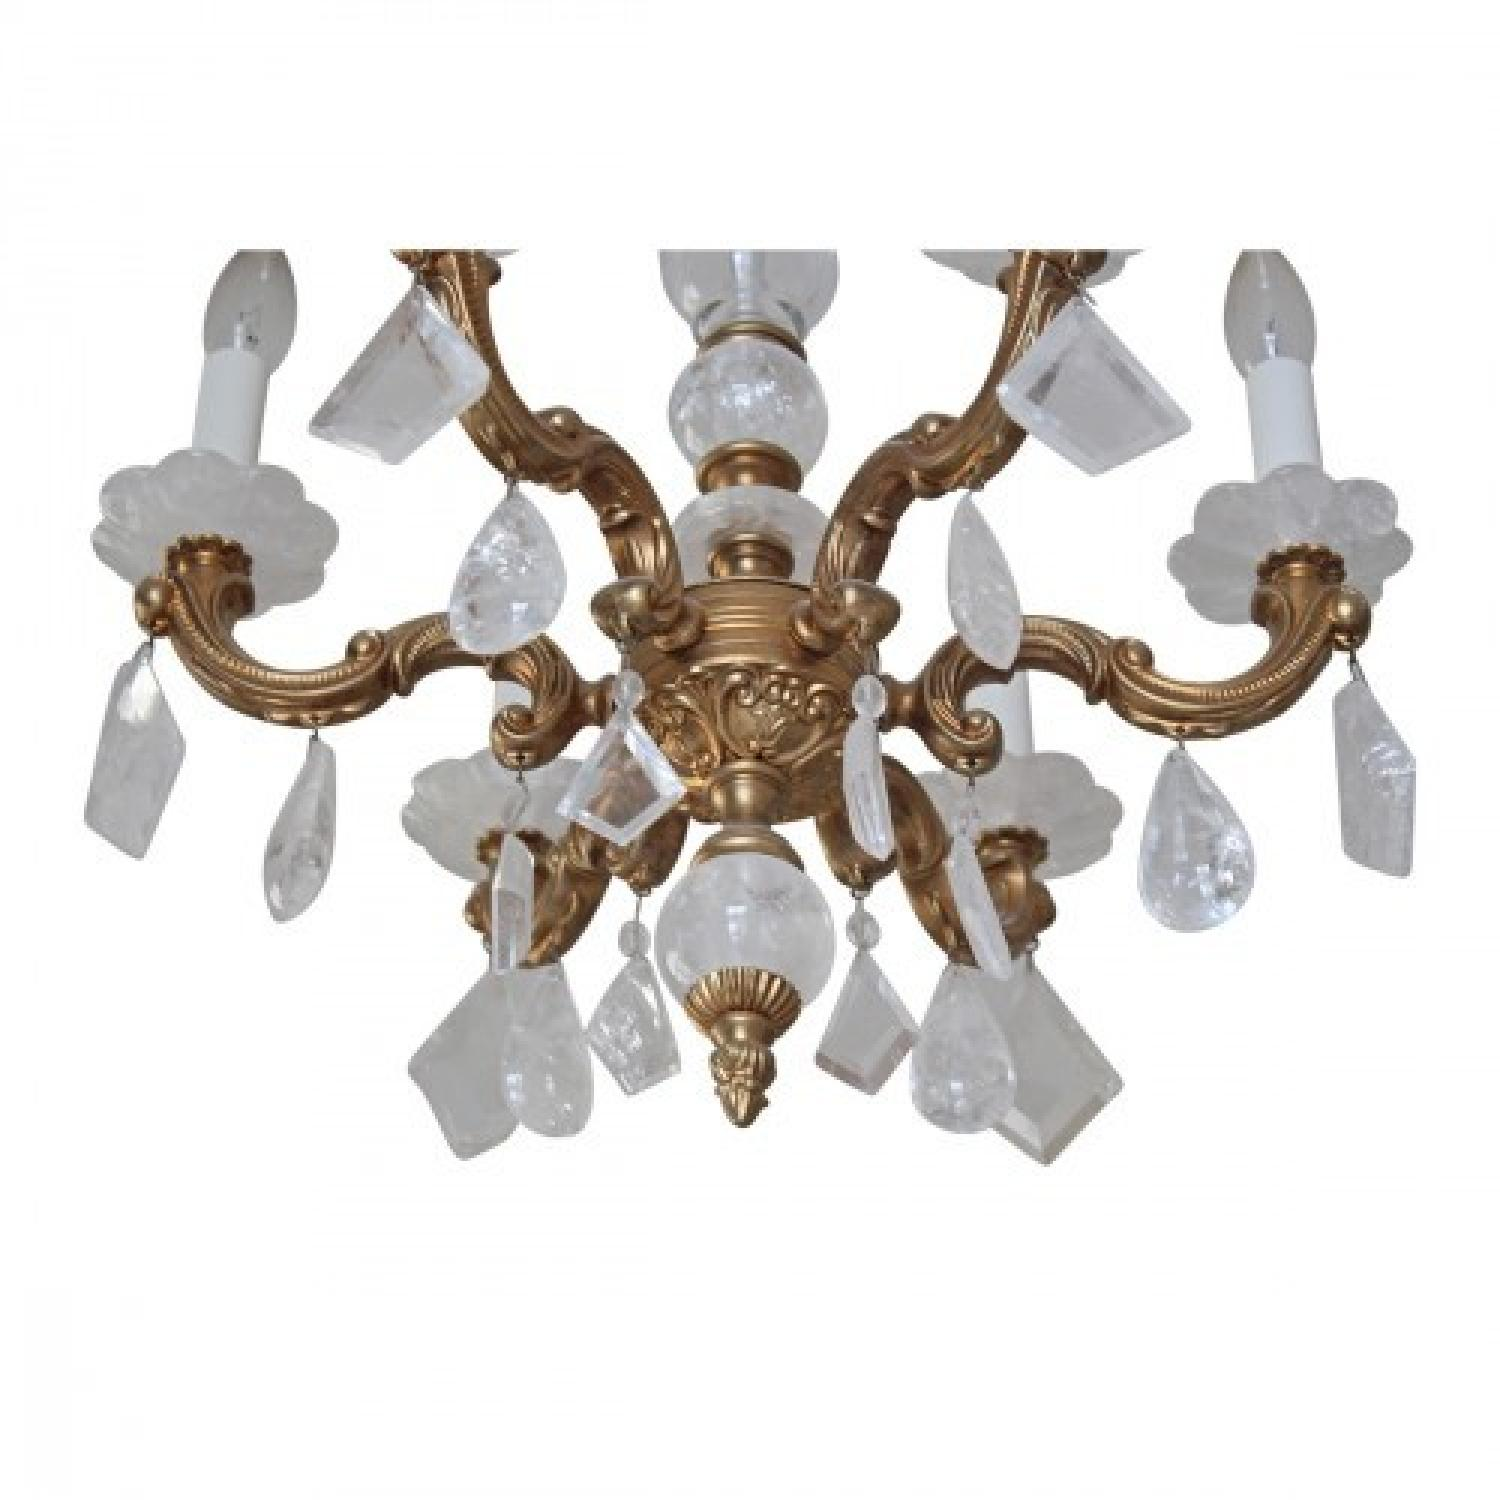 ABC Carpet & Home Brass & Glass Rock Crystal Chandelier - image-2